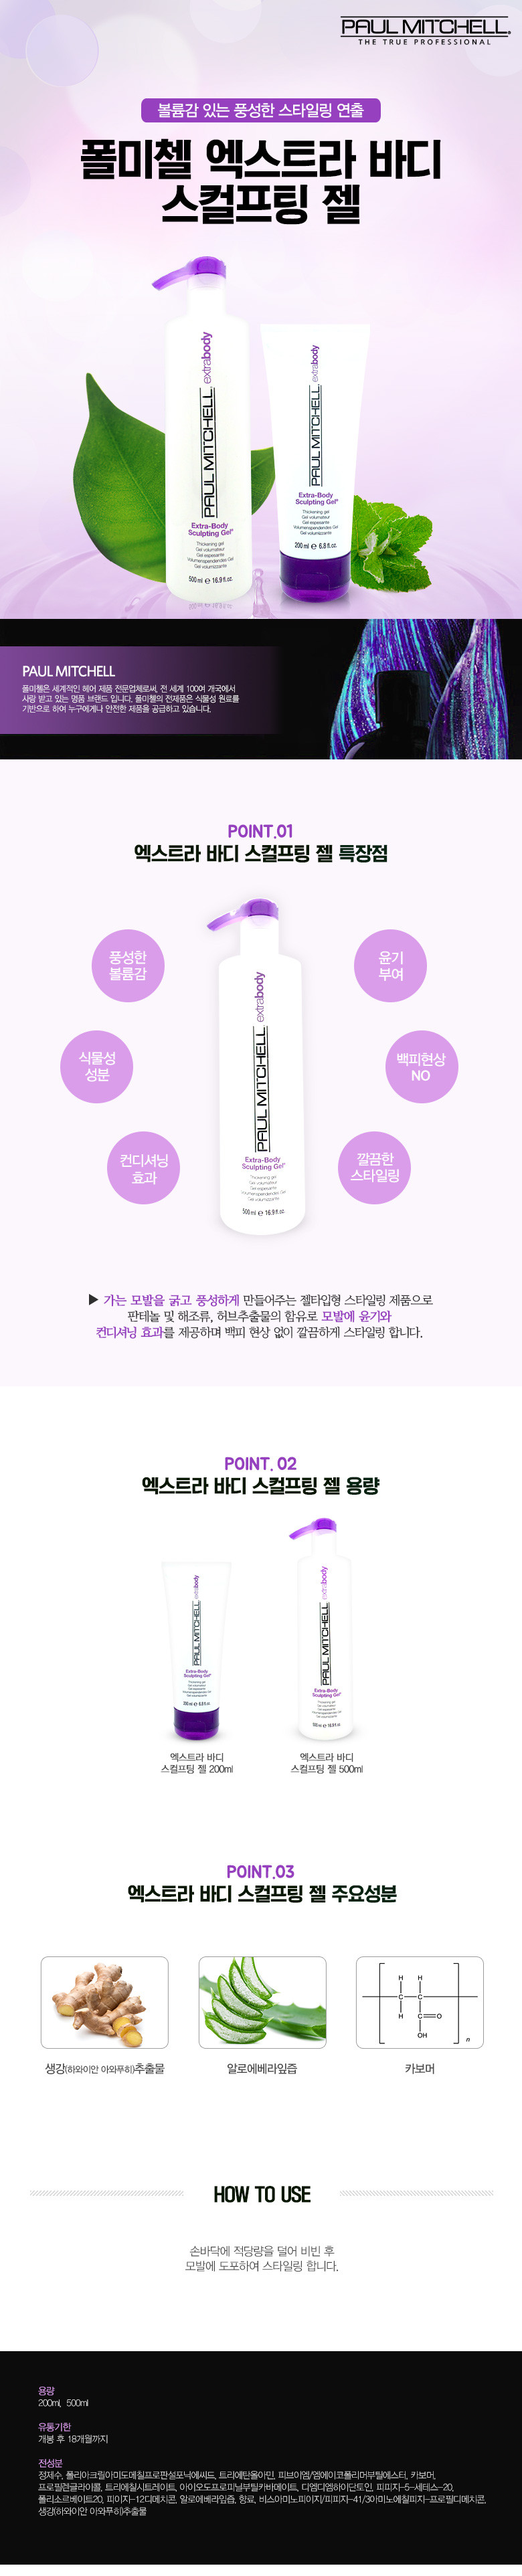 폴미첼 슈퍼스키니세럼 PAUL MITCHELL Super Skinny Serum